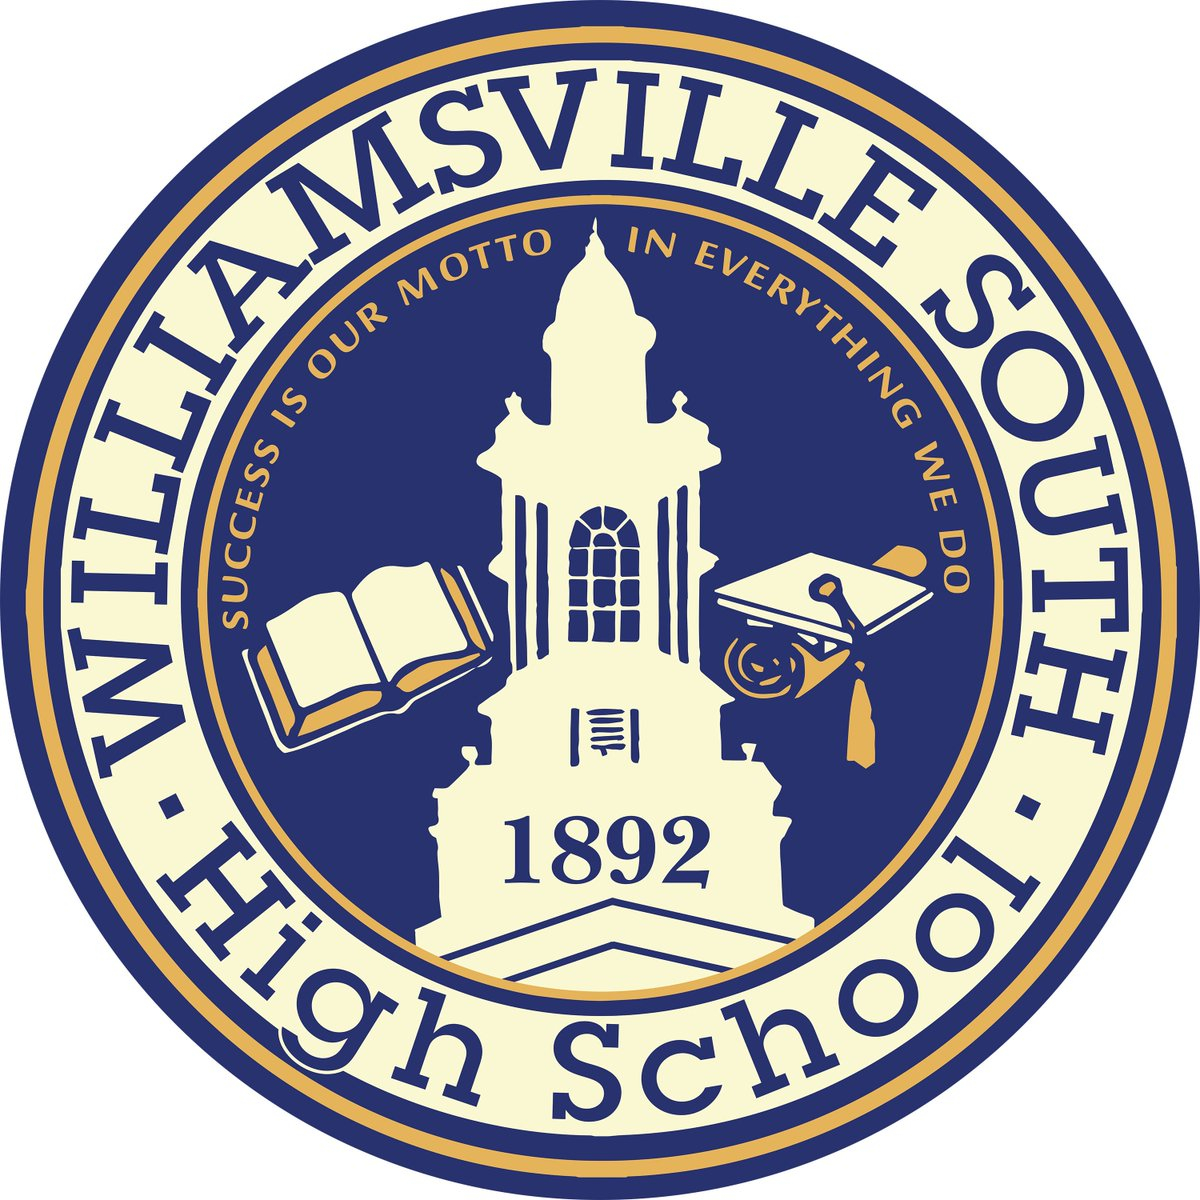 "Williamsville Csd On Twitter: ""hs Graduation Weekend June 25 Intended For Wcsd School District Williamsville Ny Calendar"